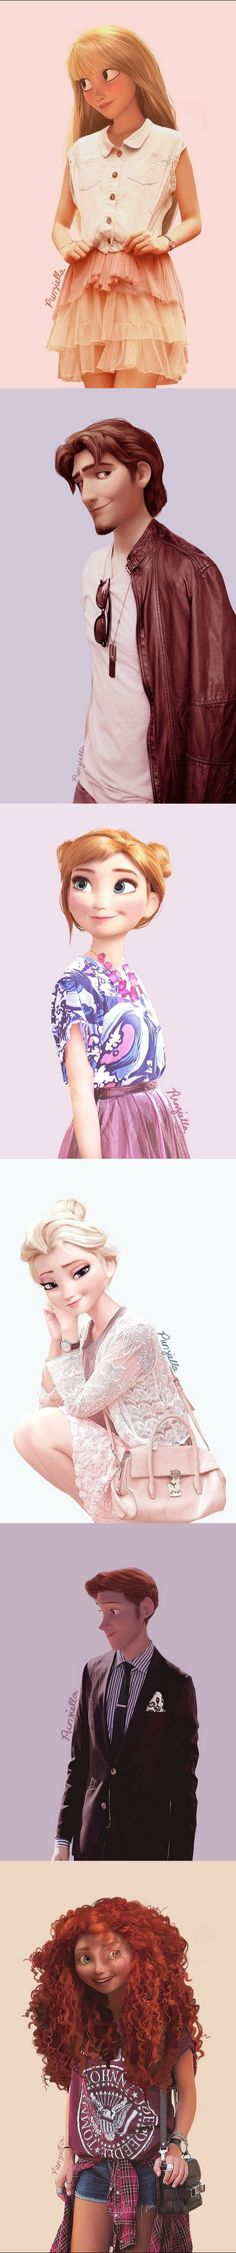 What Disney characters would look like in modern clothing